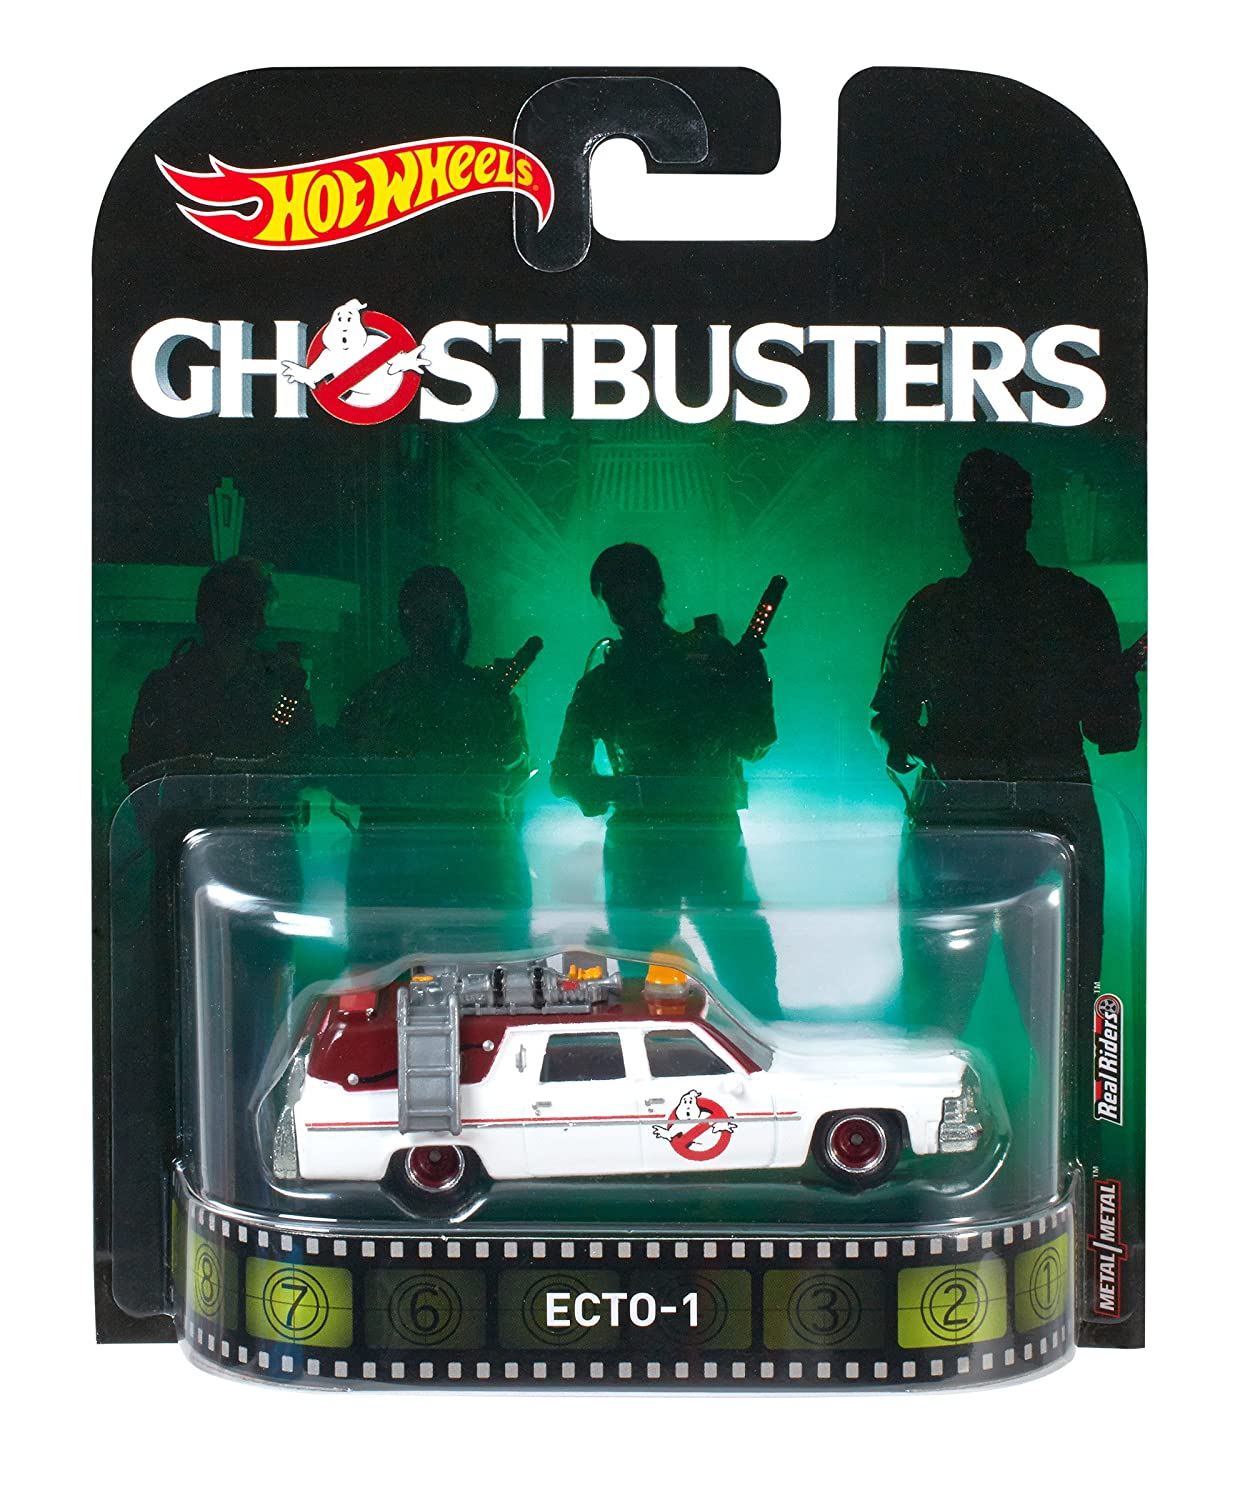 Hot Wheels Ghostbusters ECTO-1 Vehicle Mattel DWJ72